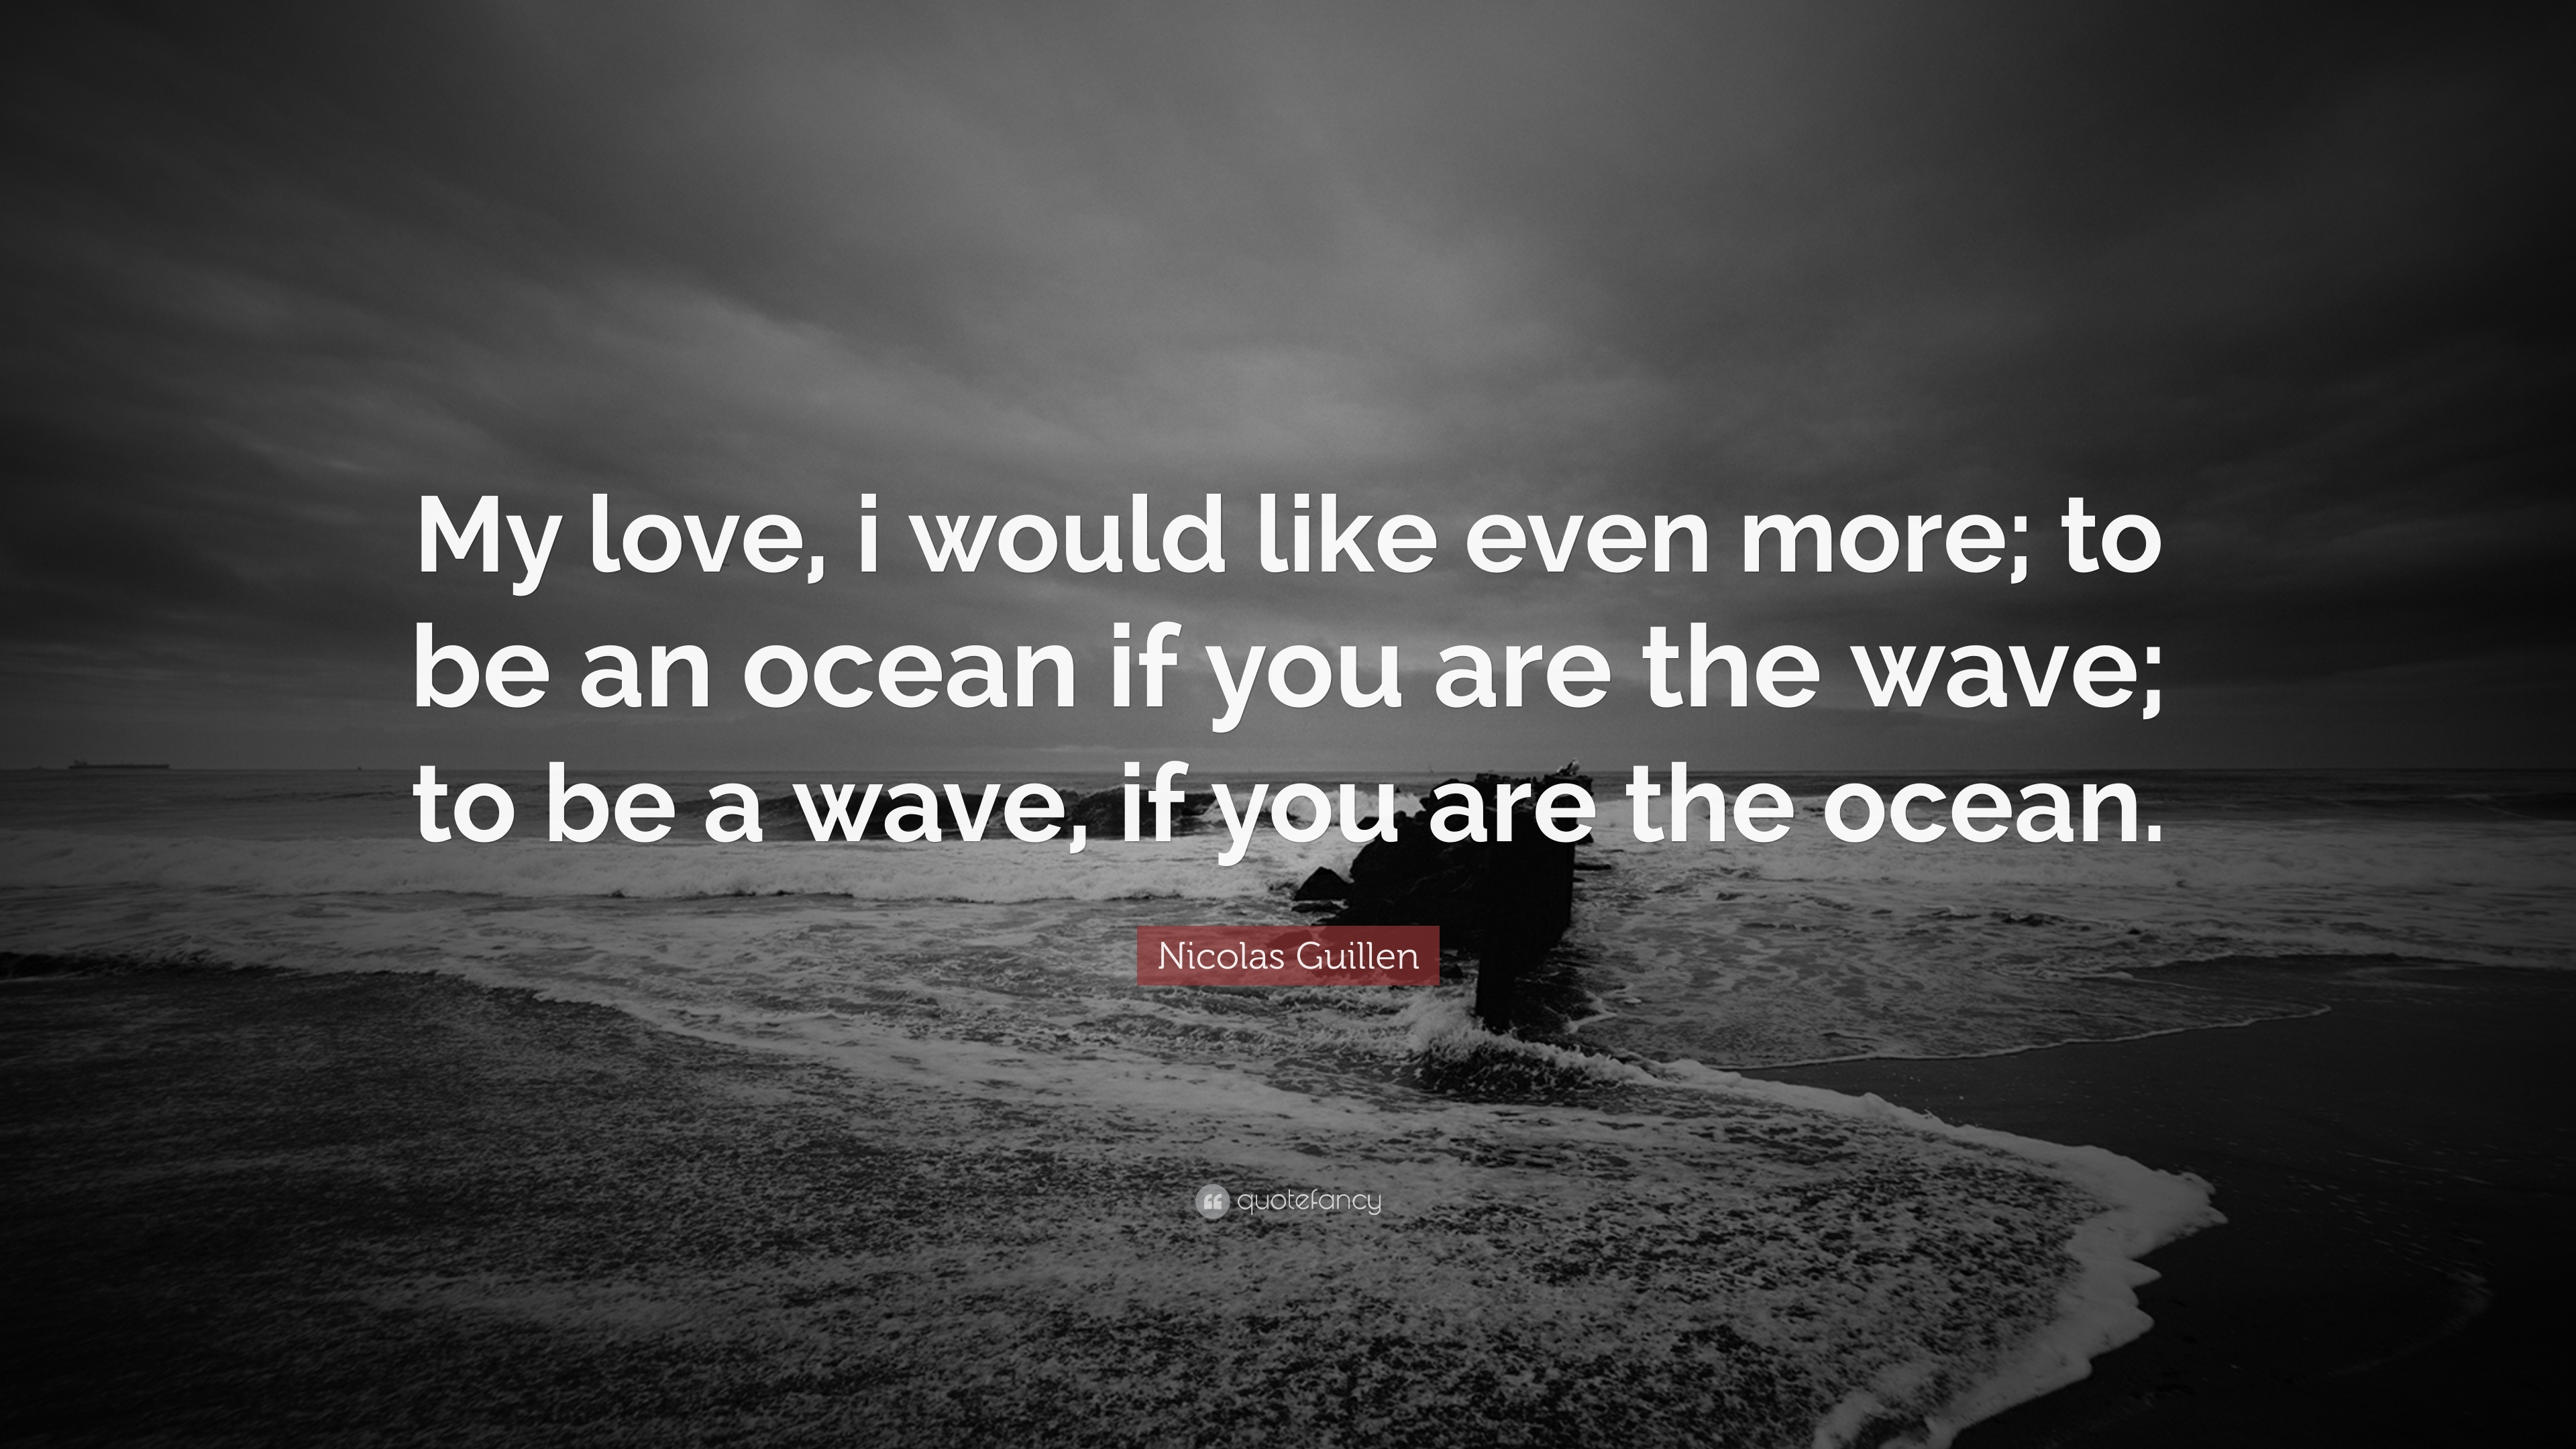 Nicolas Guillen Quote: U201cMy Love, I Would Like Even More; To Be